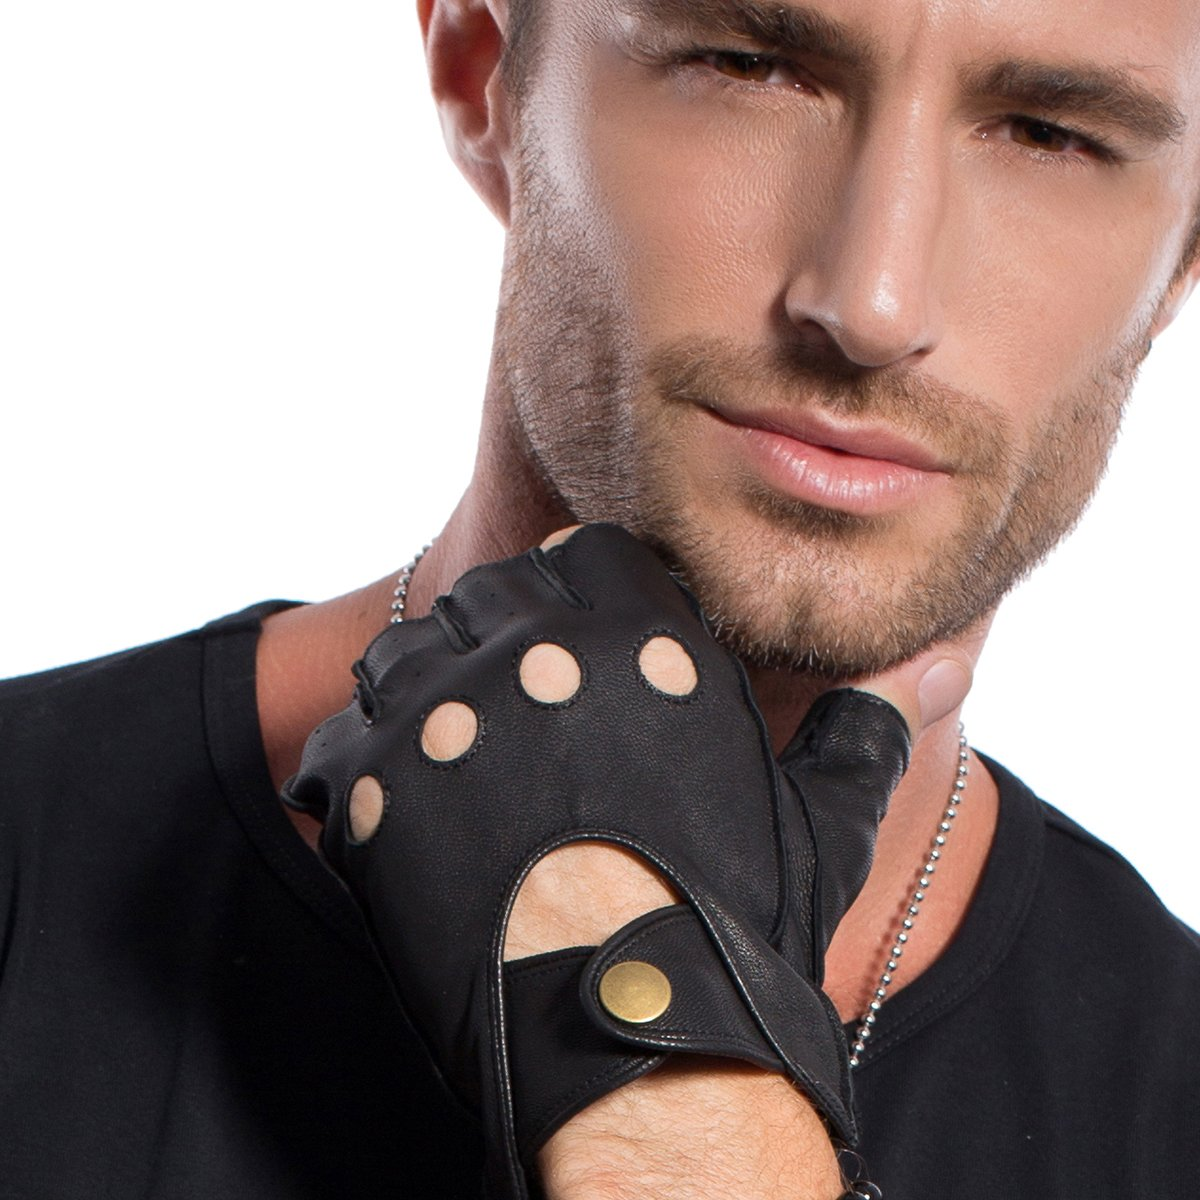 MATSU Mens Fingerless Driving Leather Black Gloves Available for Rivets DIY M1076S Matsu Gloves